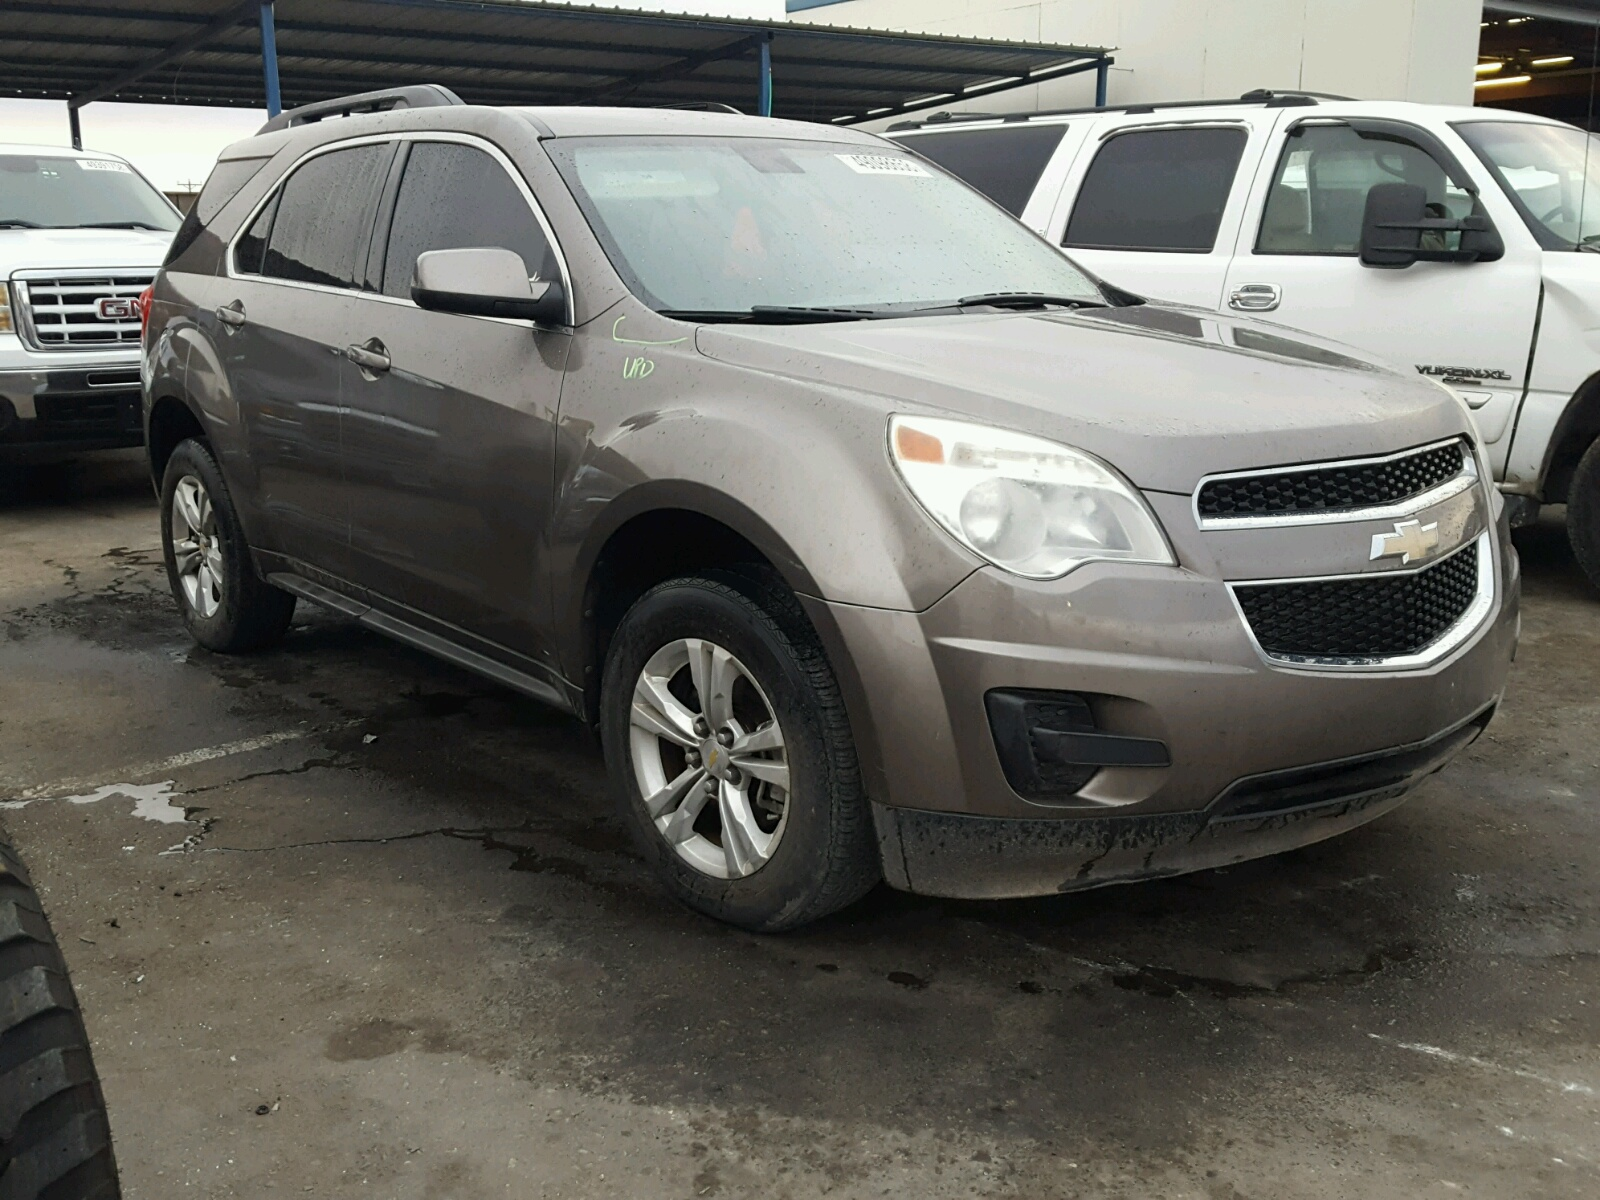 Salvage 2010 Chevrolet EQUINOX LT for sale